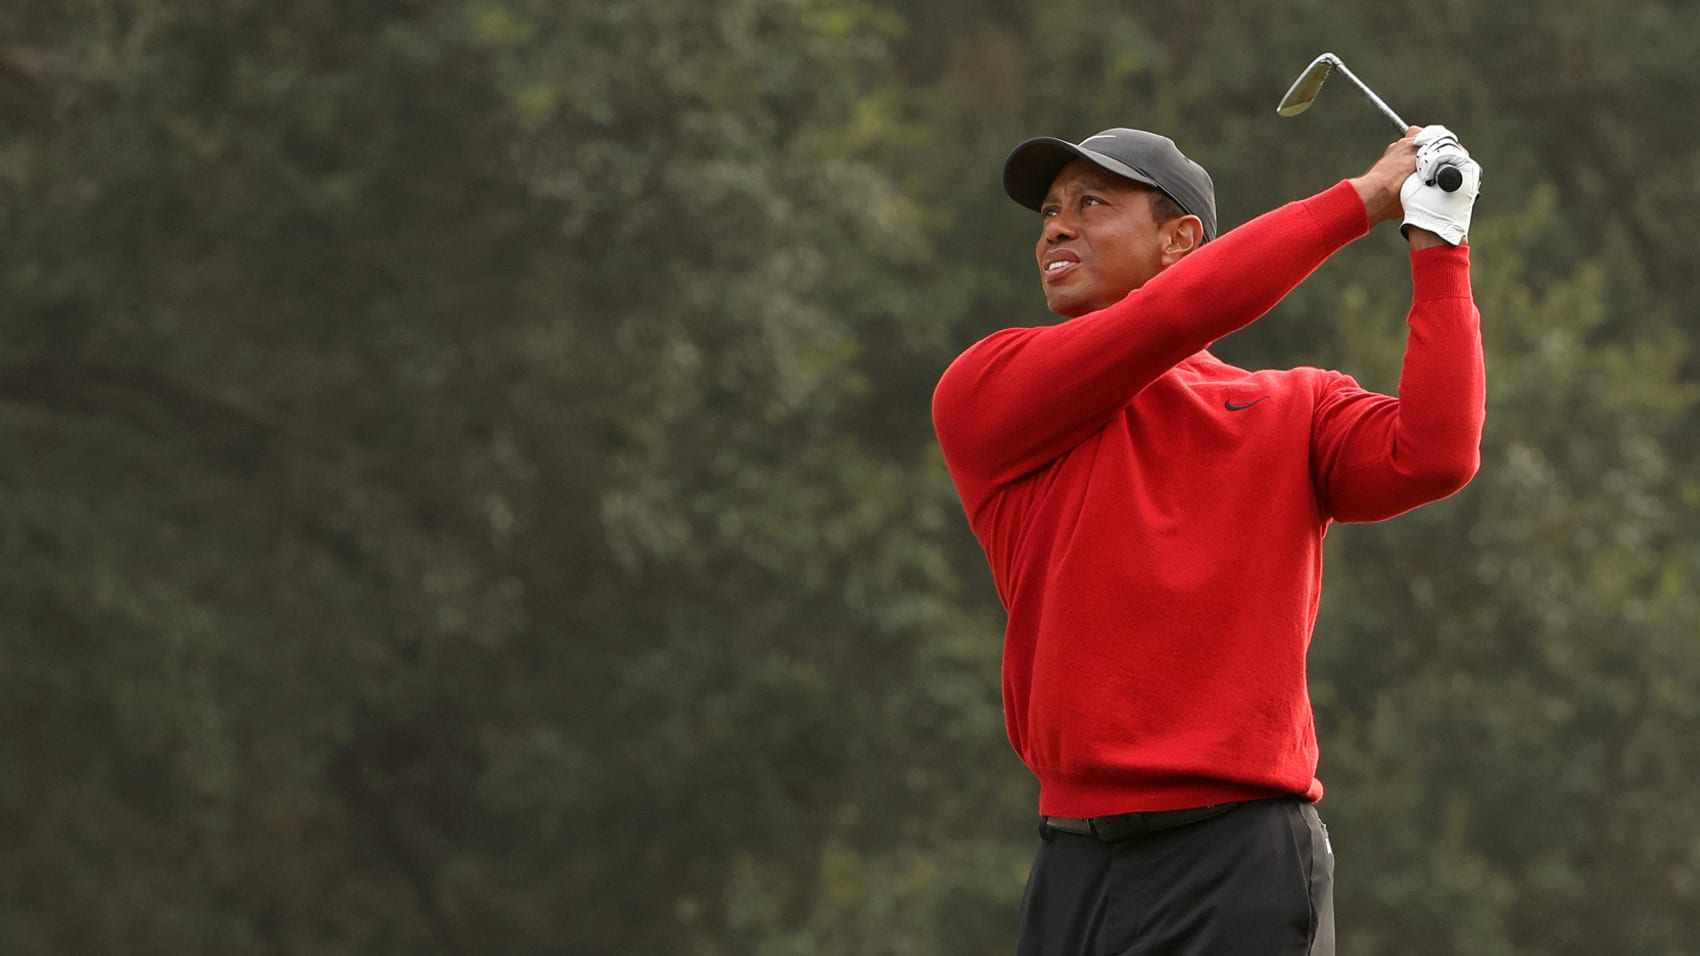 tiger swing 1694 getty - Tiger Woods erleidet schweren Autounfall